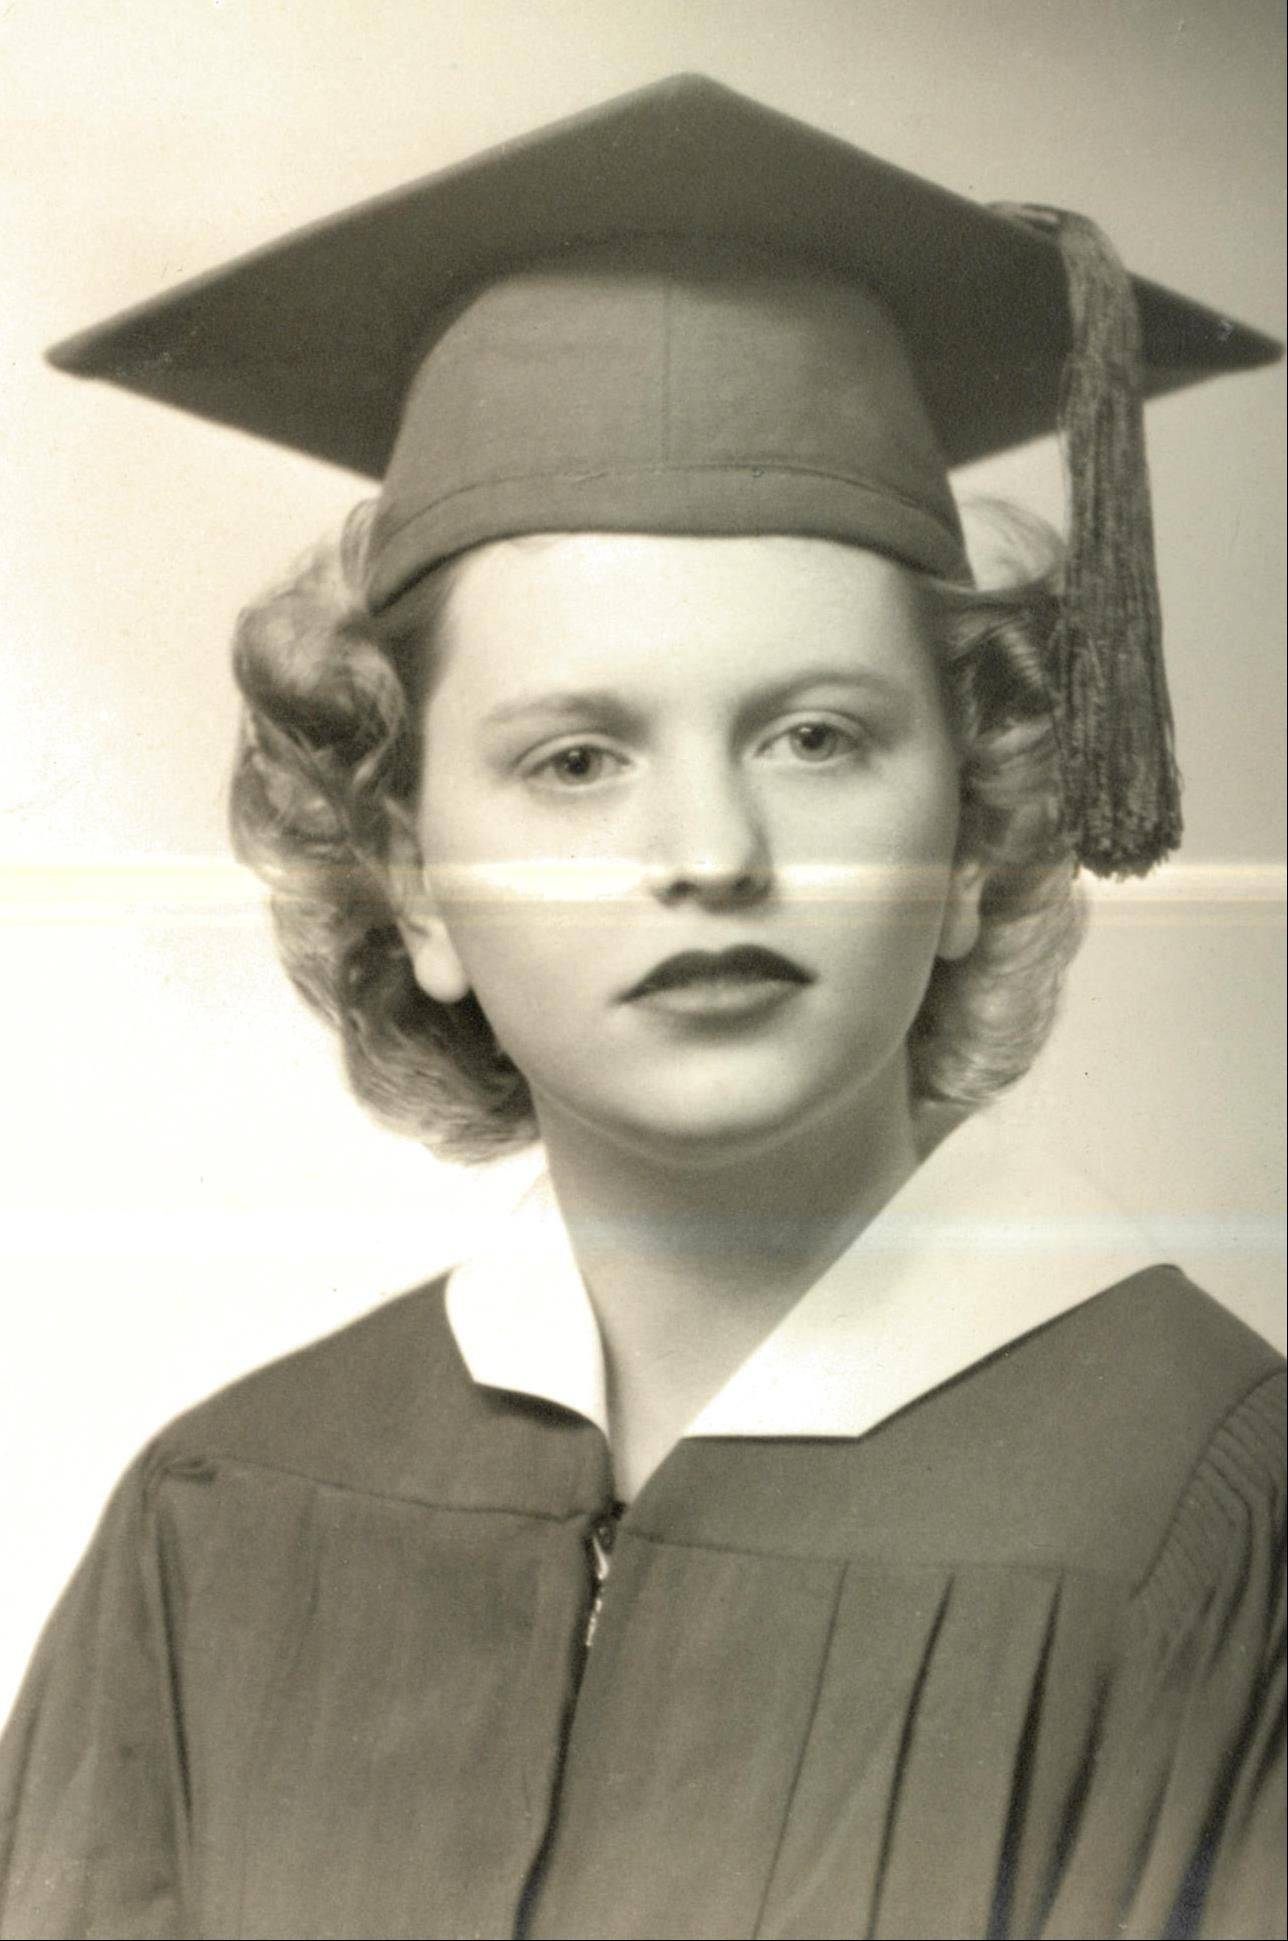 Juil Patricia Wasmond, of Cary, who died Sept. 2, is pictured in this graduation photo from St. Edward High School in Elgin. In 1958, she and her husband, Bob, founded Little Angels, a long-term care facility in Elgin for children and young adults with developmental disabilities and complex medical needs.